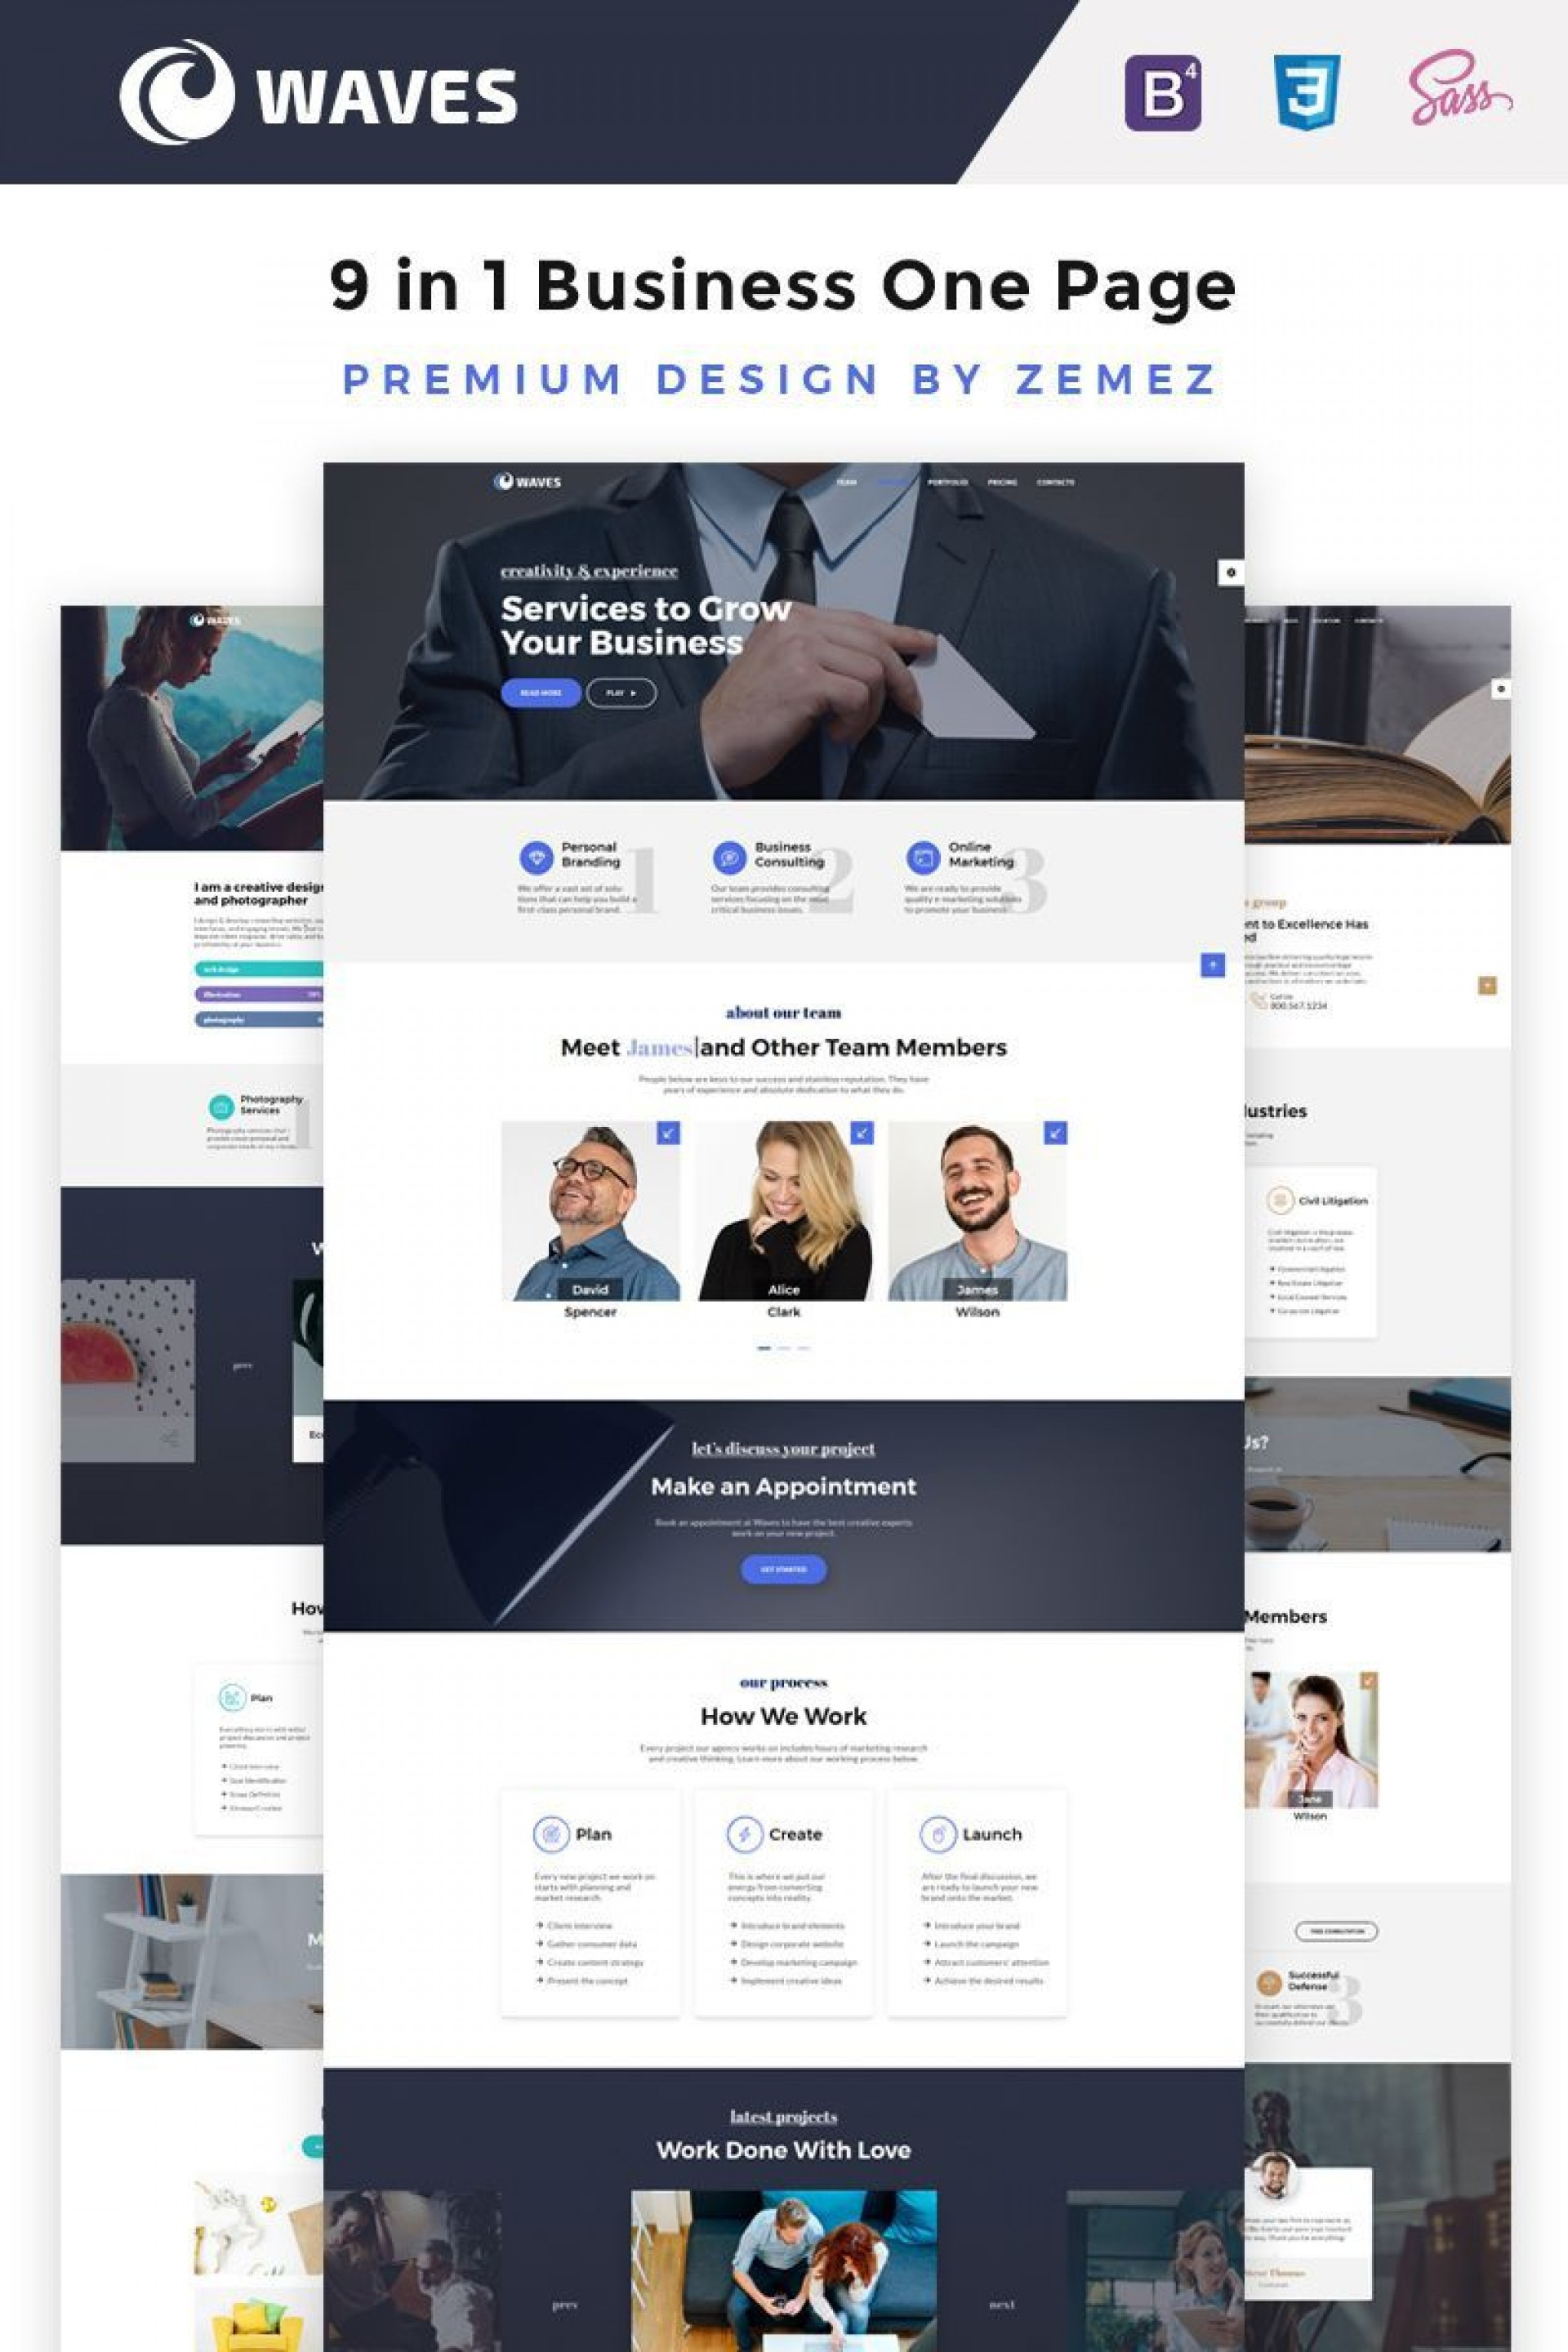 000 Formidable Single Page Web Template Design  Templates One Website Free Download Html5 Bootstrap1920